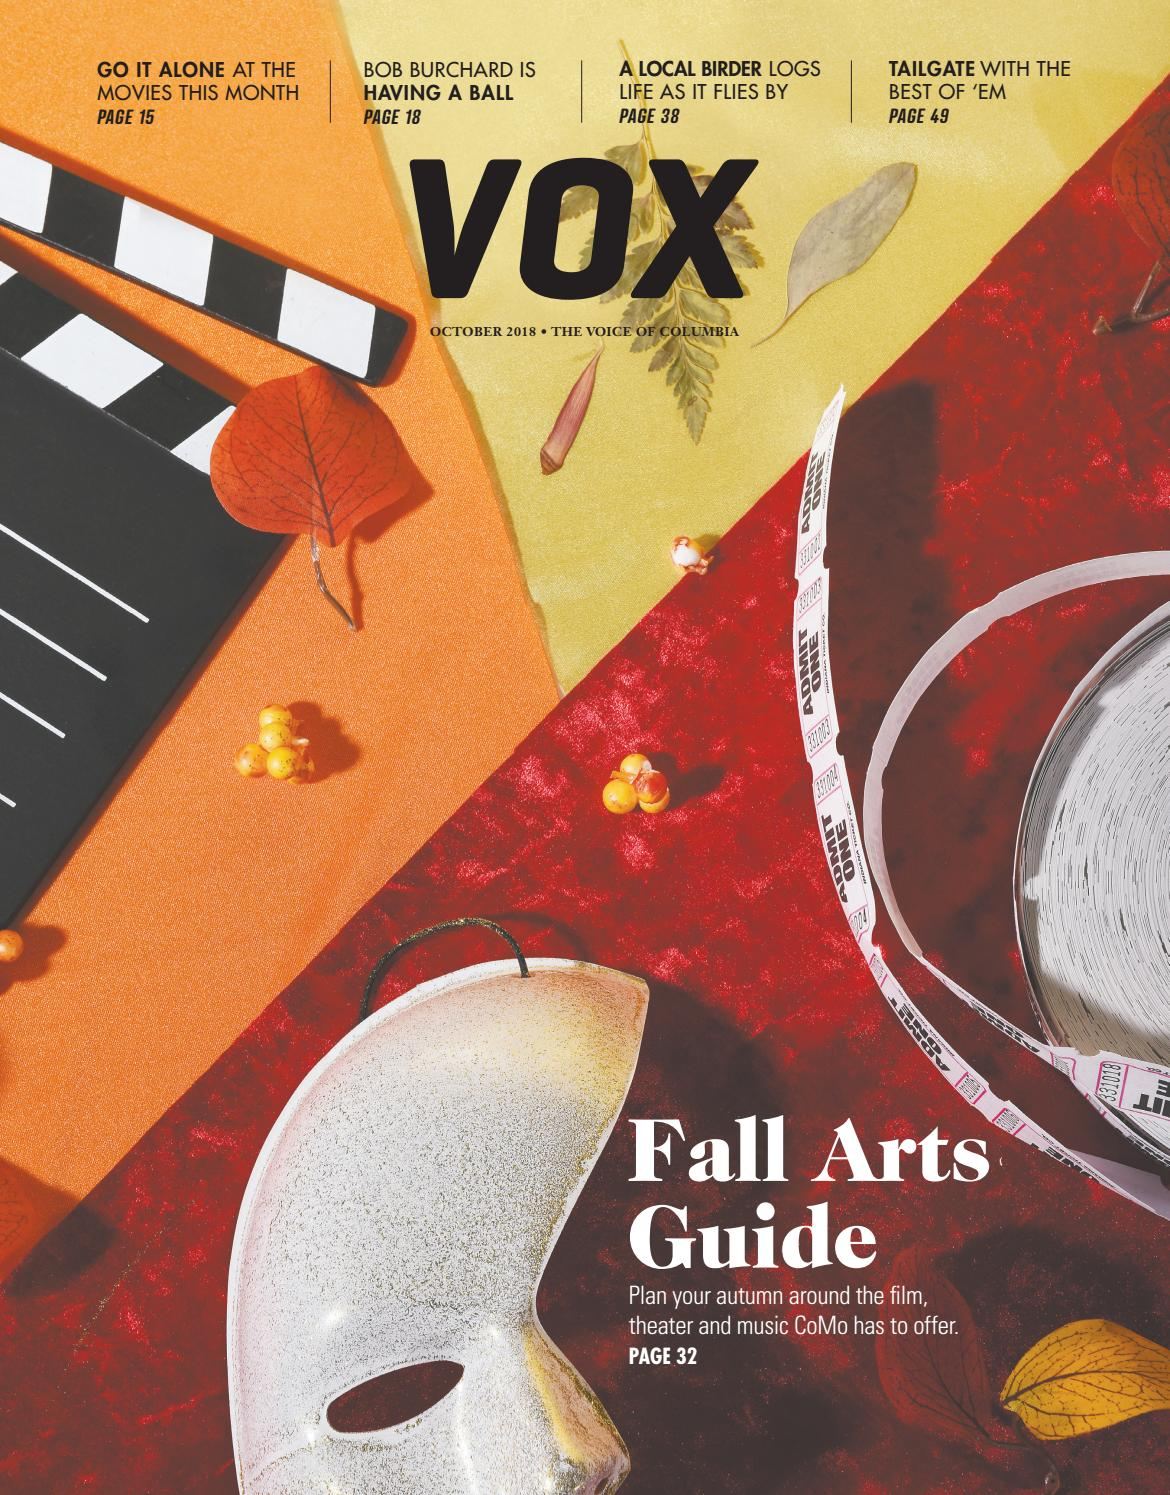 Vox Magazine October 2018 by Vox Magazine - issuu